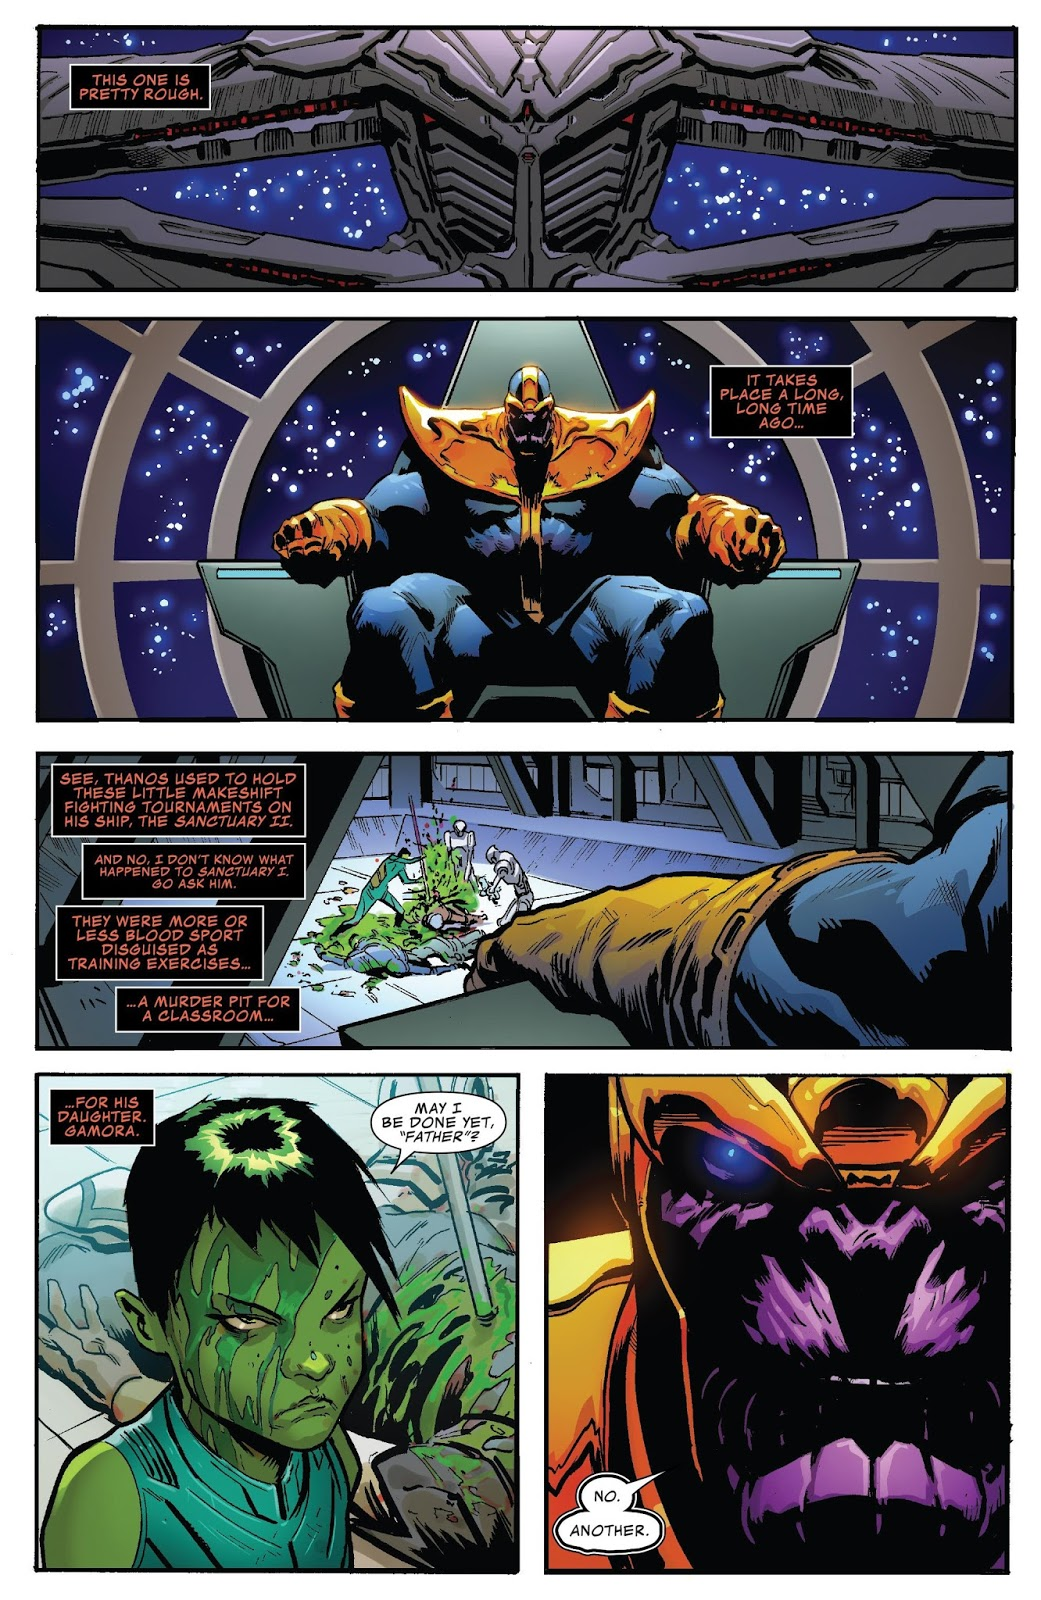 Weird Science DC Comics: Thanos Annual #1 Review - Marvel Monday